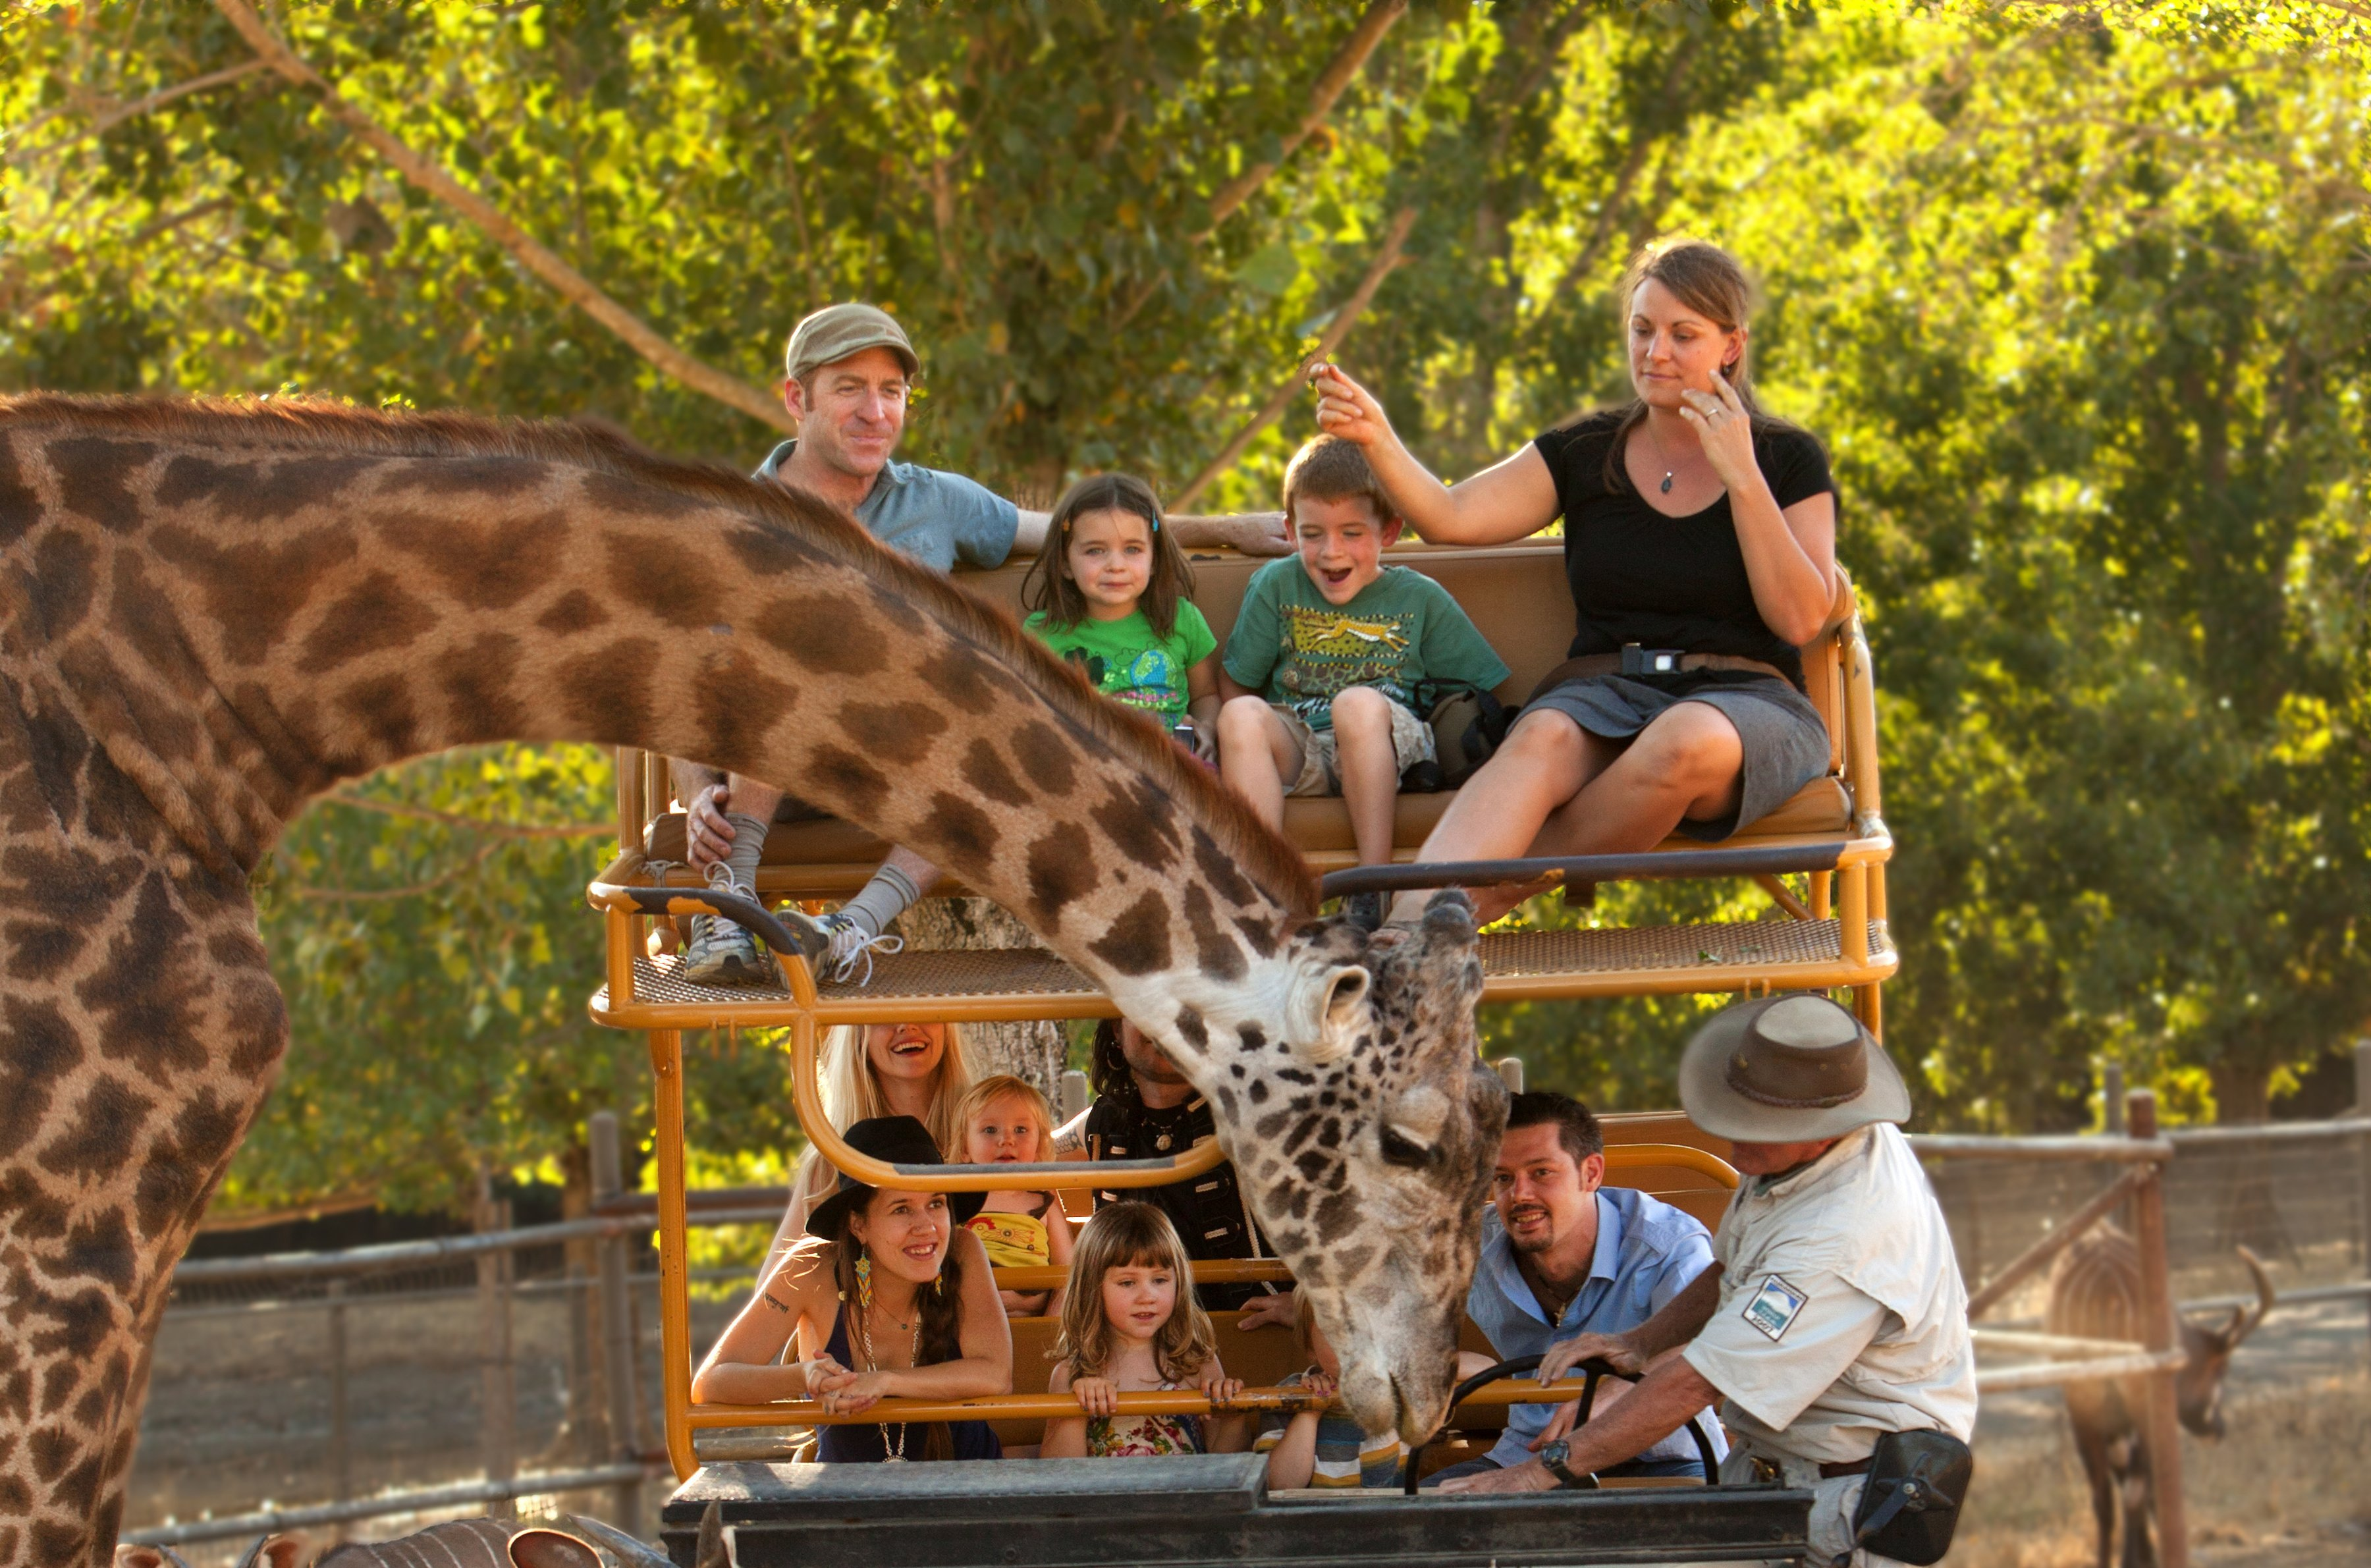 Food for the Ages<br/>Strategies from Zoos and Botanical Gardens to Satisfy All Guests